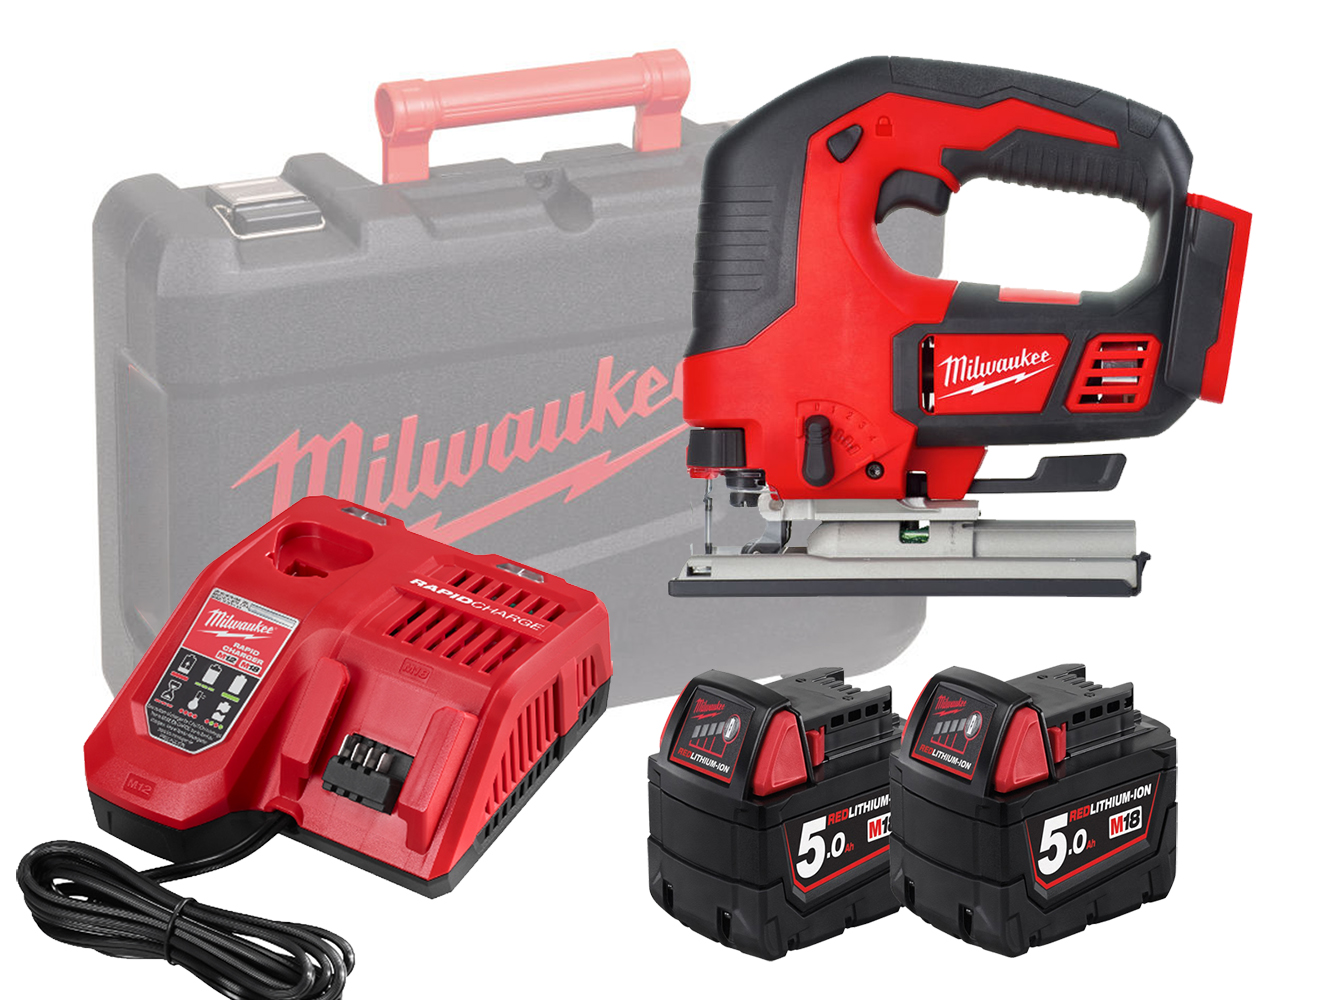 MILWAUKEE 18V HEAVY-DUTY TOP HANDLE JIGSAW - M18BJS - 5.0AH PACK